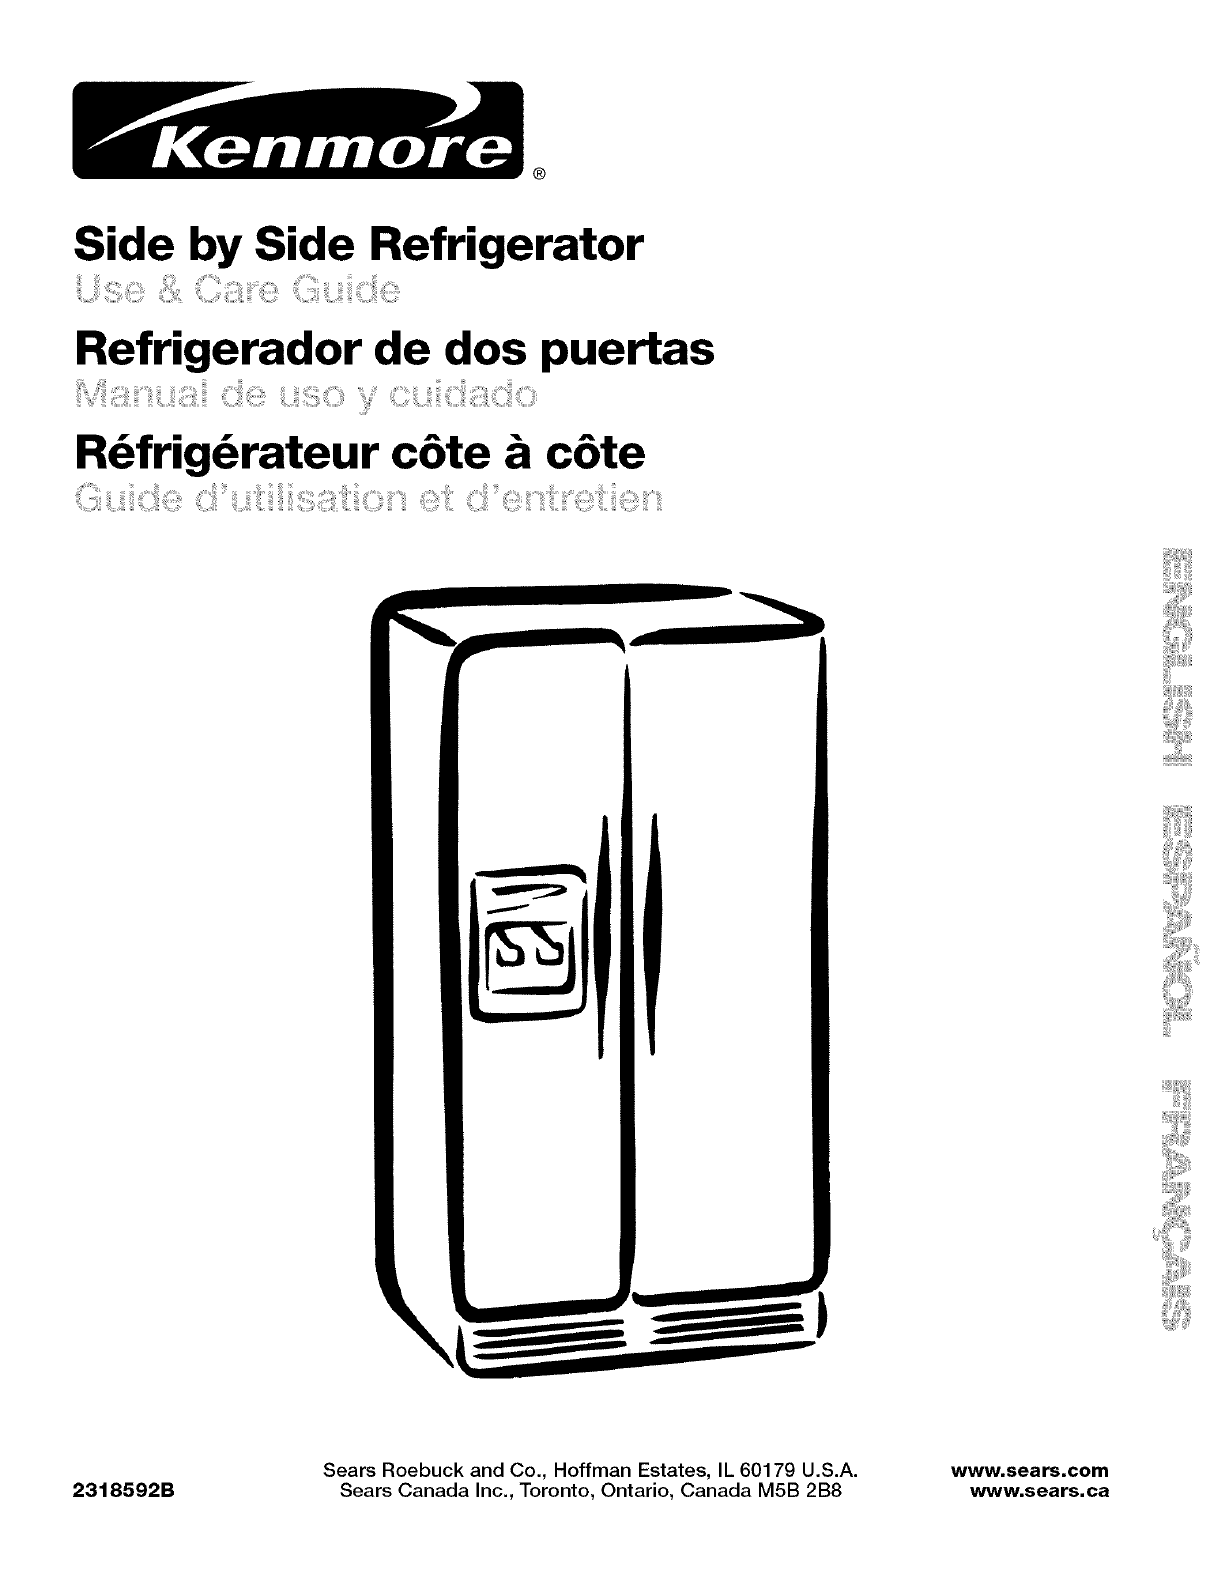 Kenmore Refrigerator User Guide